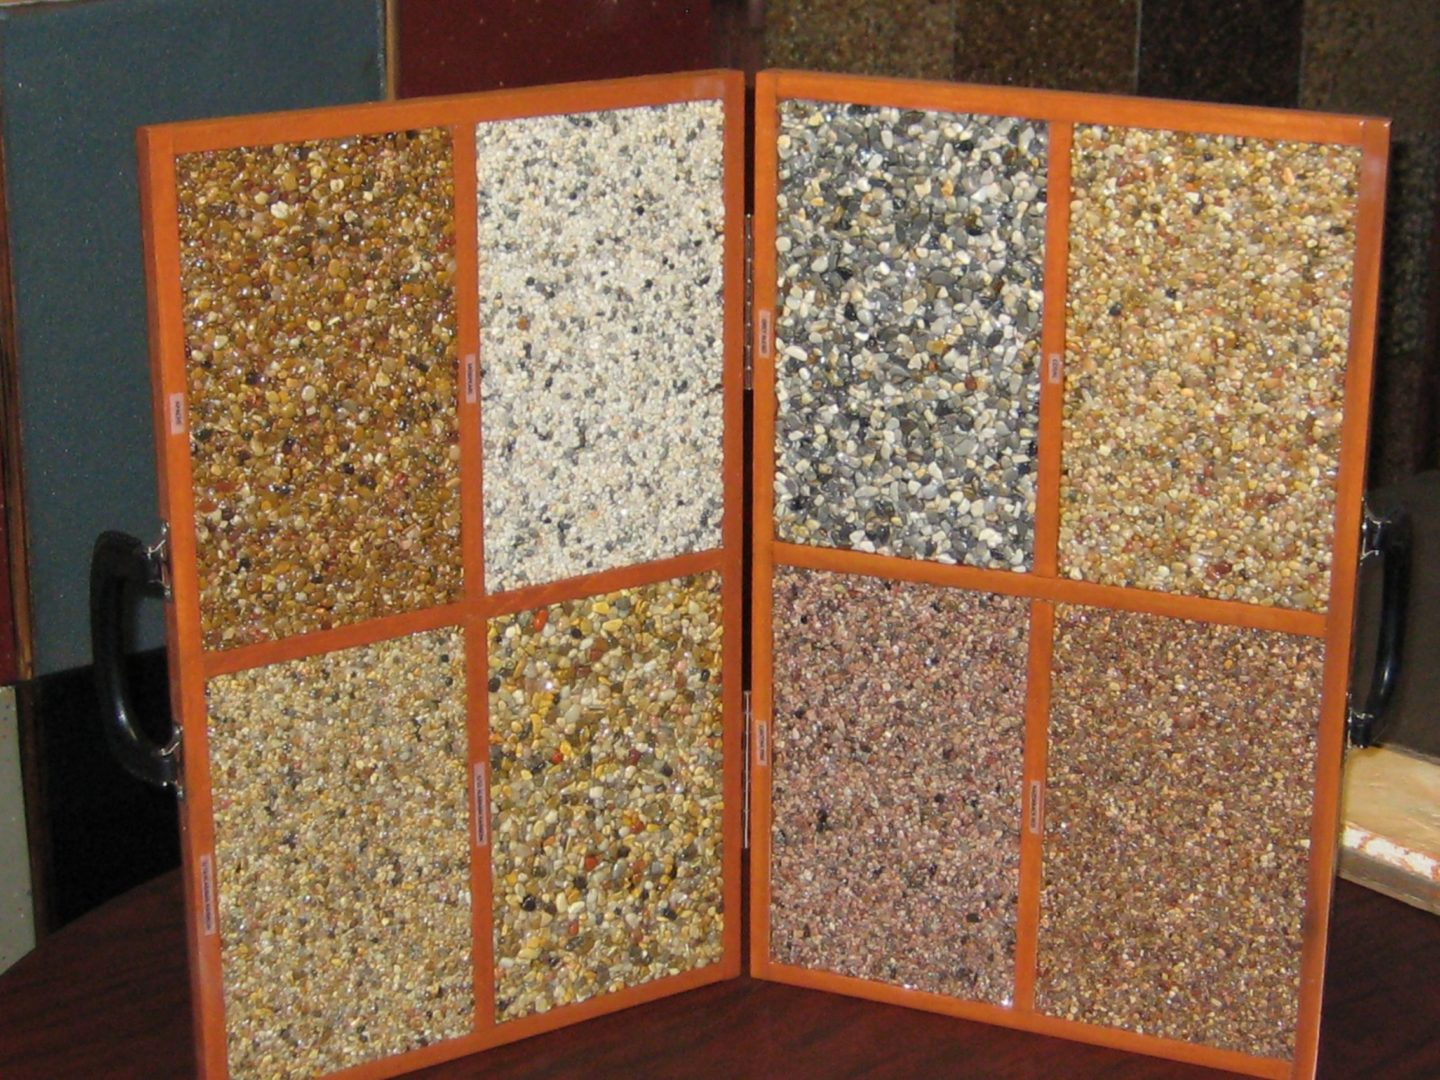 Portable briefcase size river rock samples in 8 colors